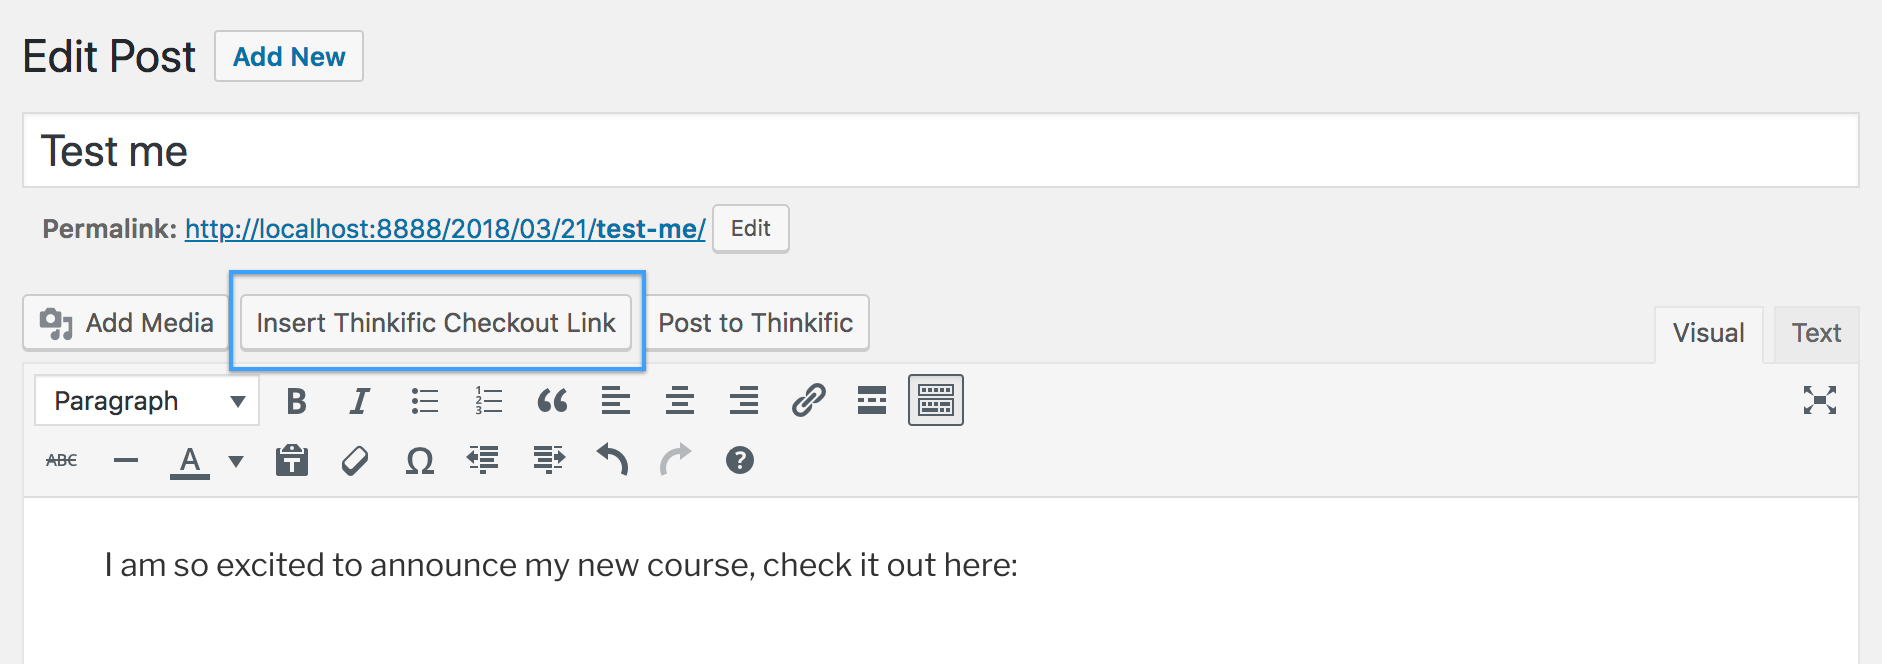 Insert Thinkific Checkout Link button in WordPress